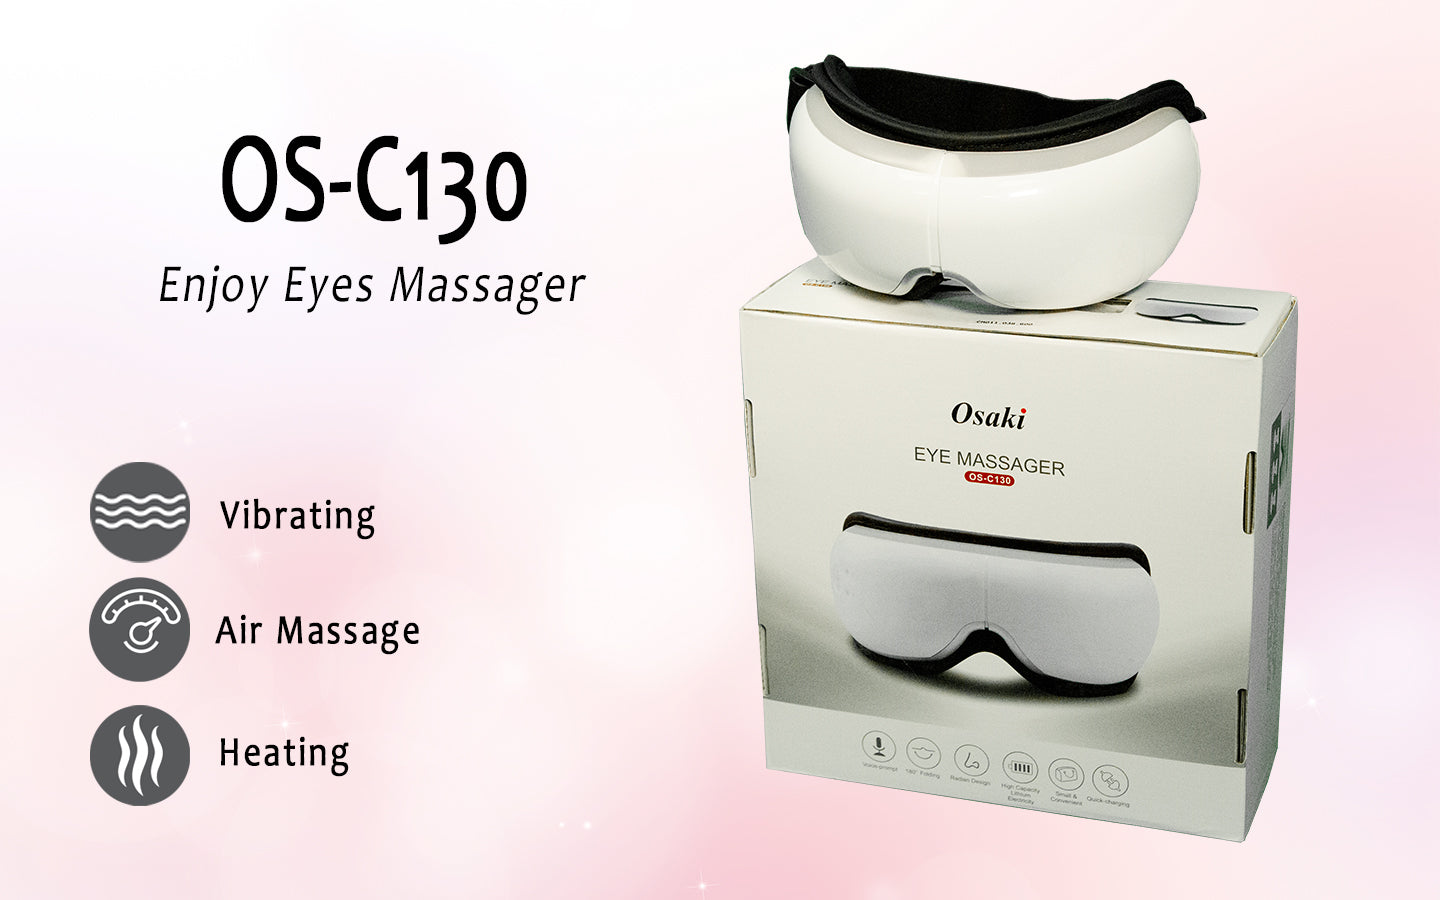 Vibrating, Air Massage, Heating